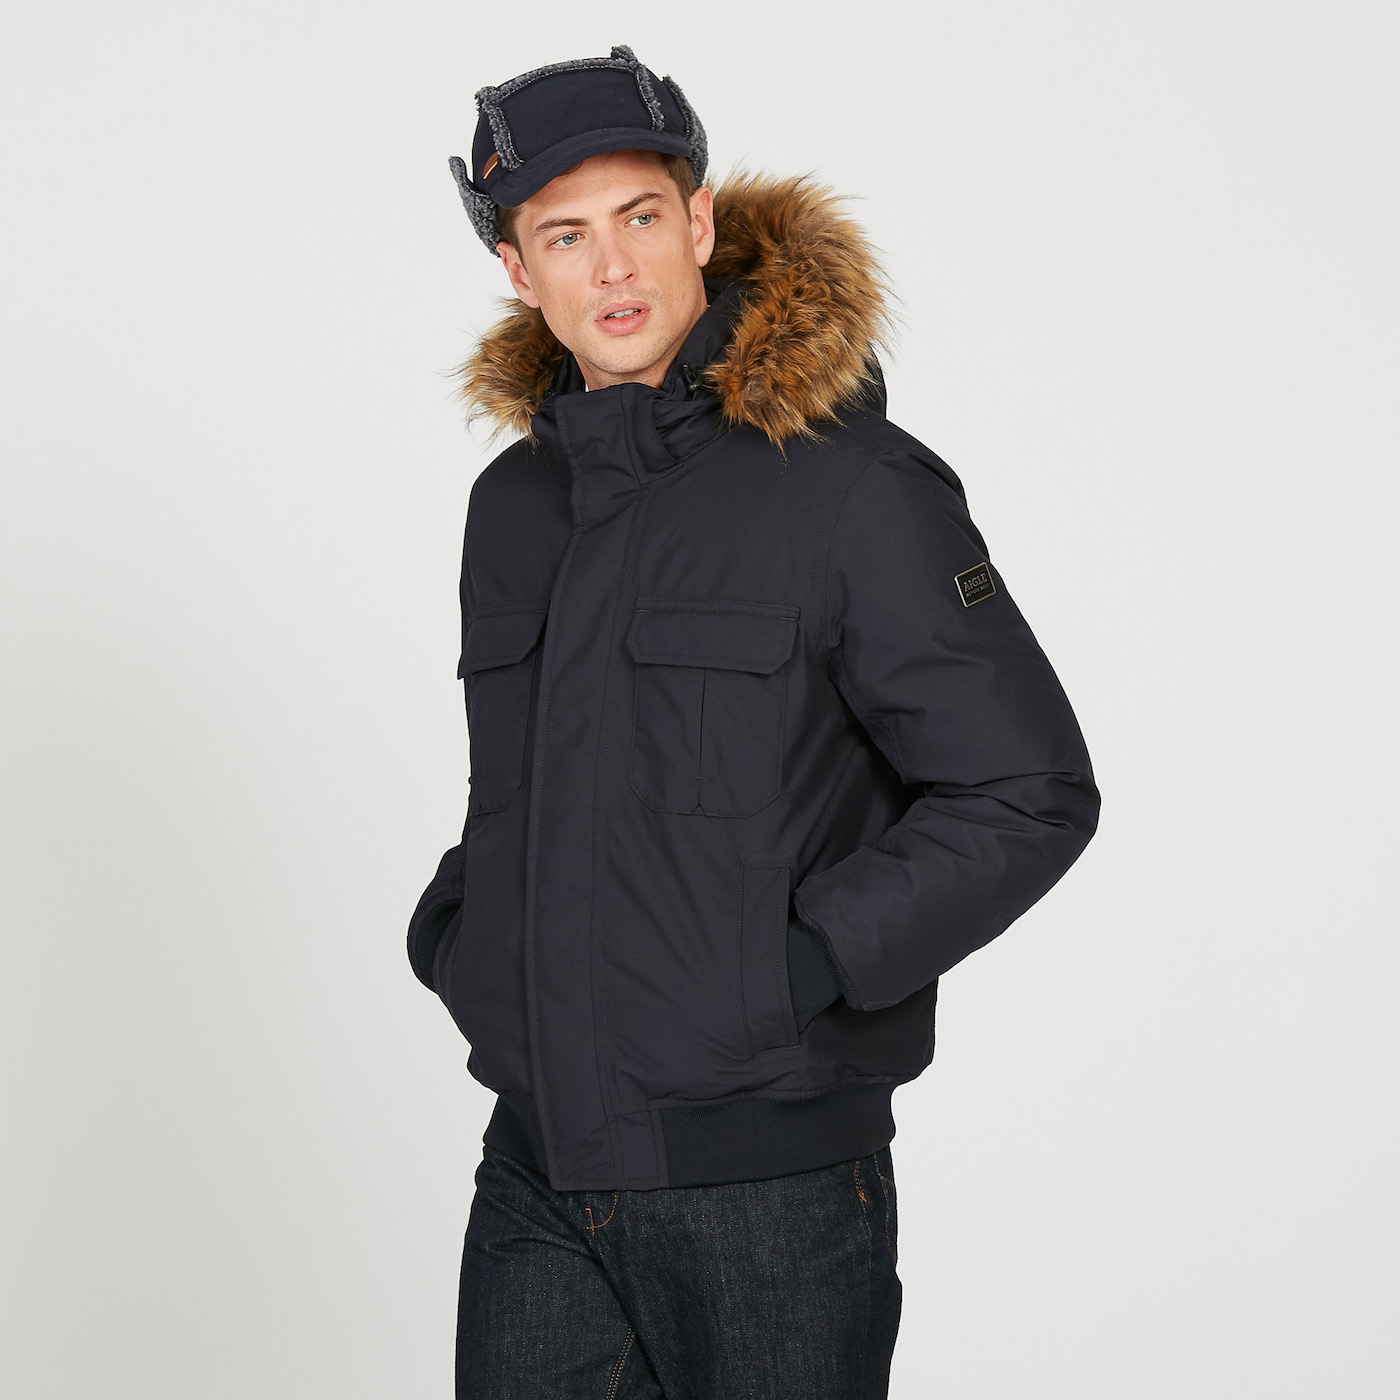 9d5506f0c2a0 Waterproof and breathable down jacket men